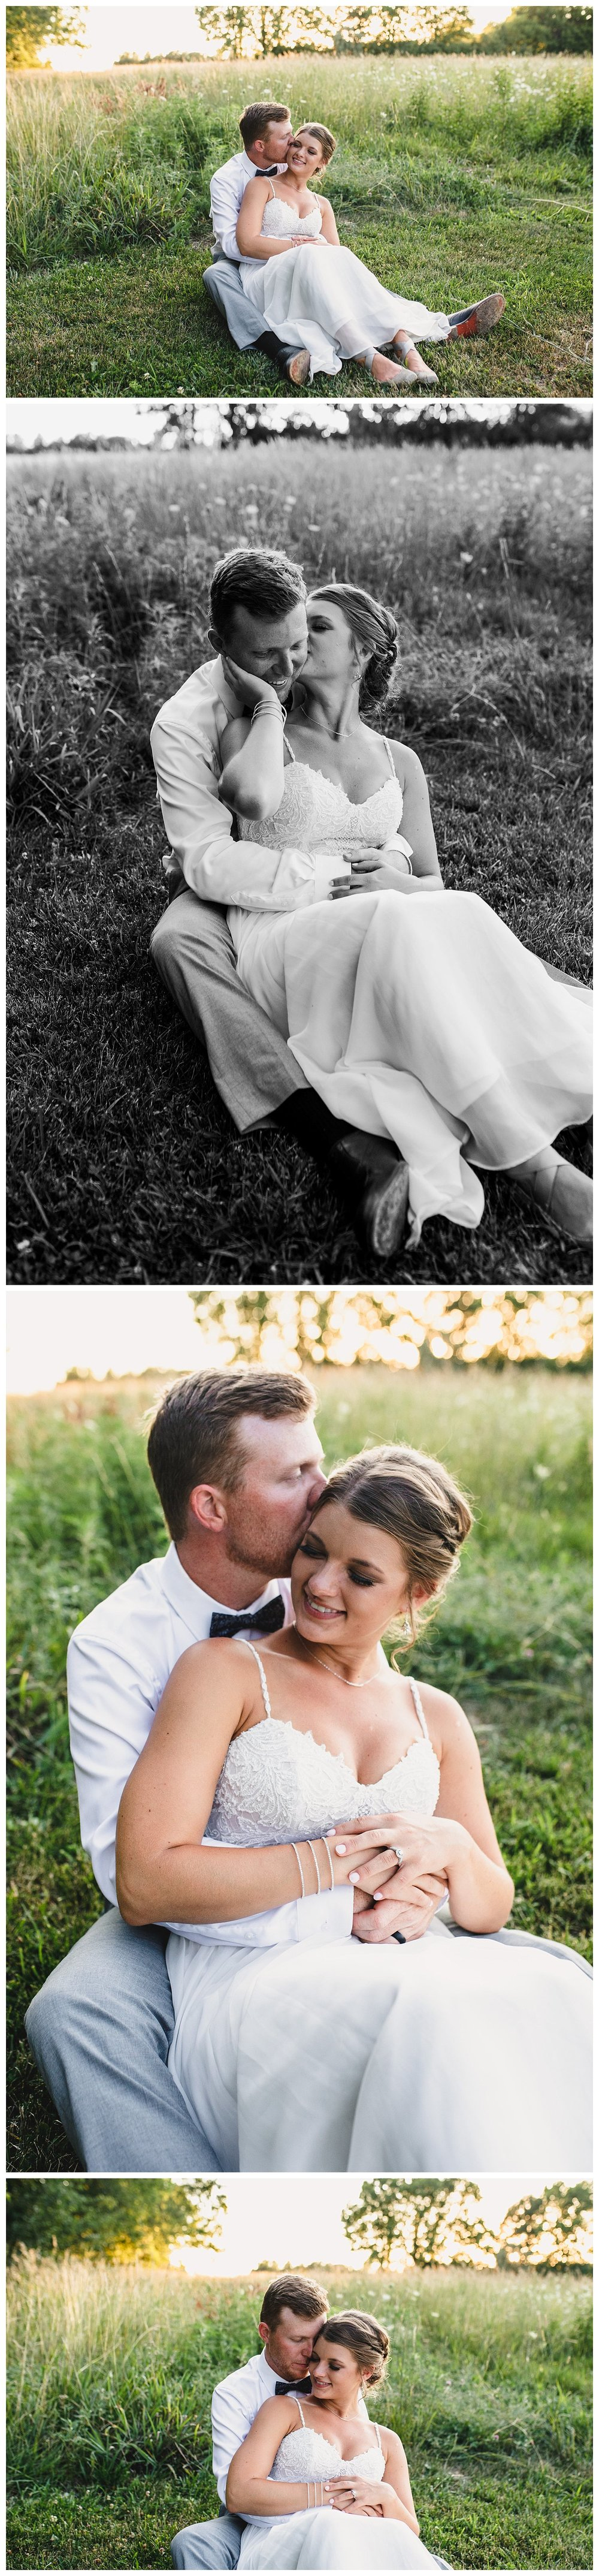 Kelsey_Diane_Photography_Kansas_City_Engagement_Wedding_Photographer_Midwest_Traveling_Missouri_Lee_Andrew_Hall_And_Garden_Blue_Springs_Wedding_Clayton_Kimberly_Summer_Wedding_0852.jpg